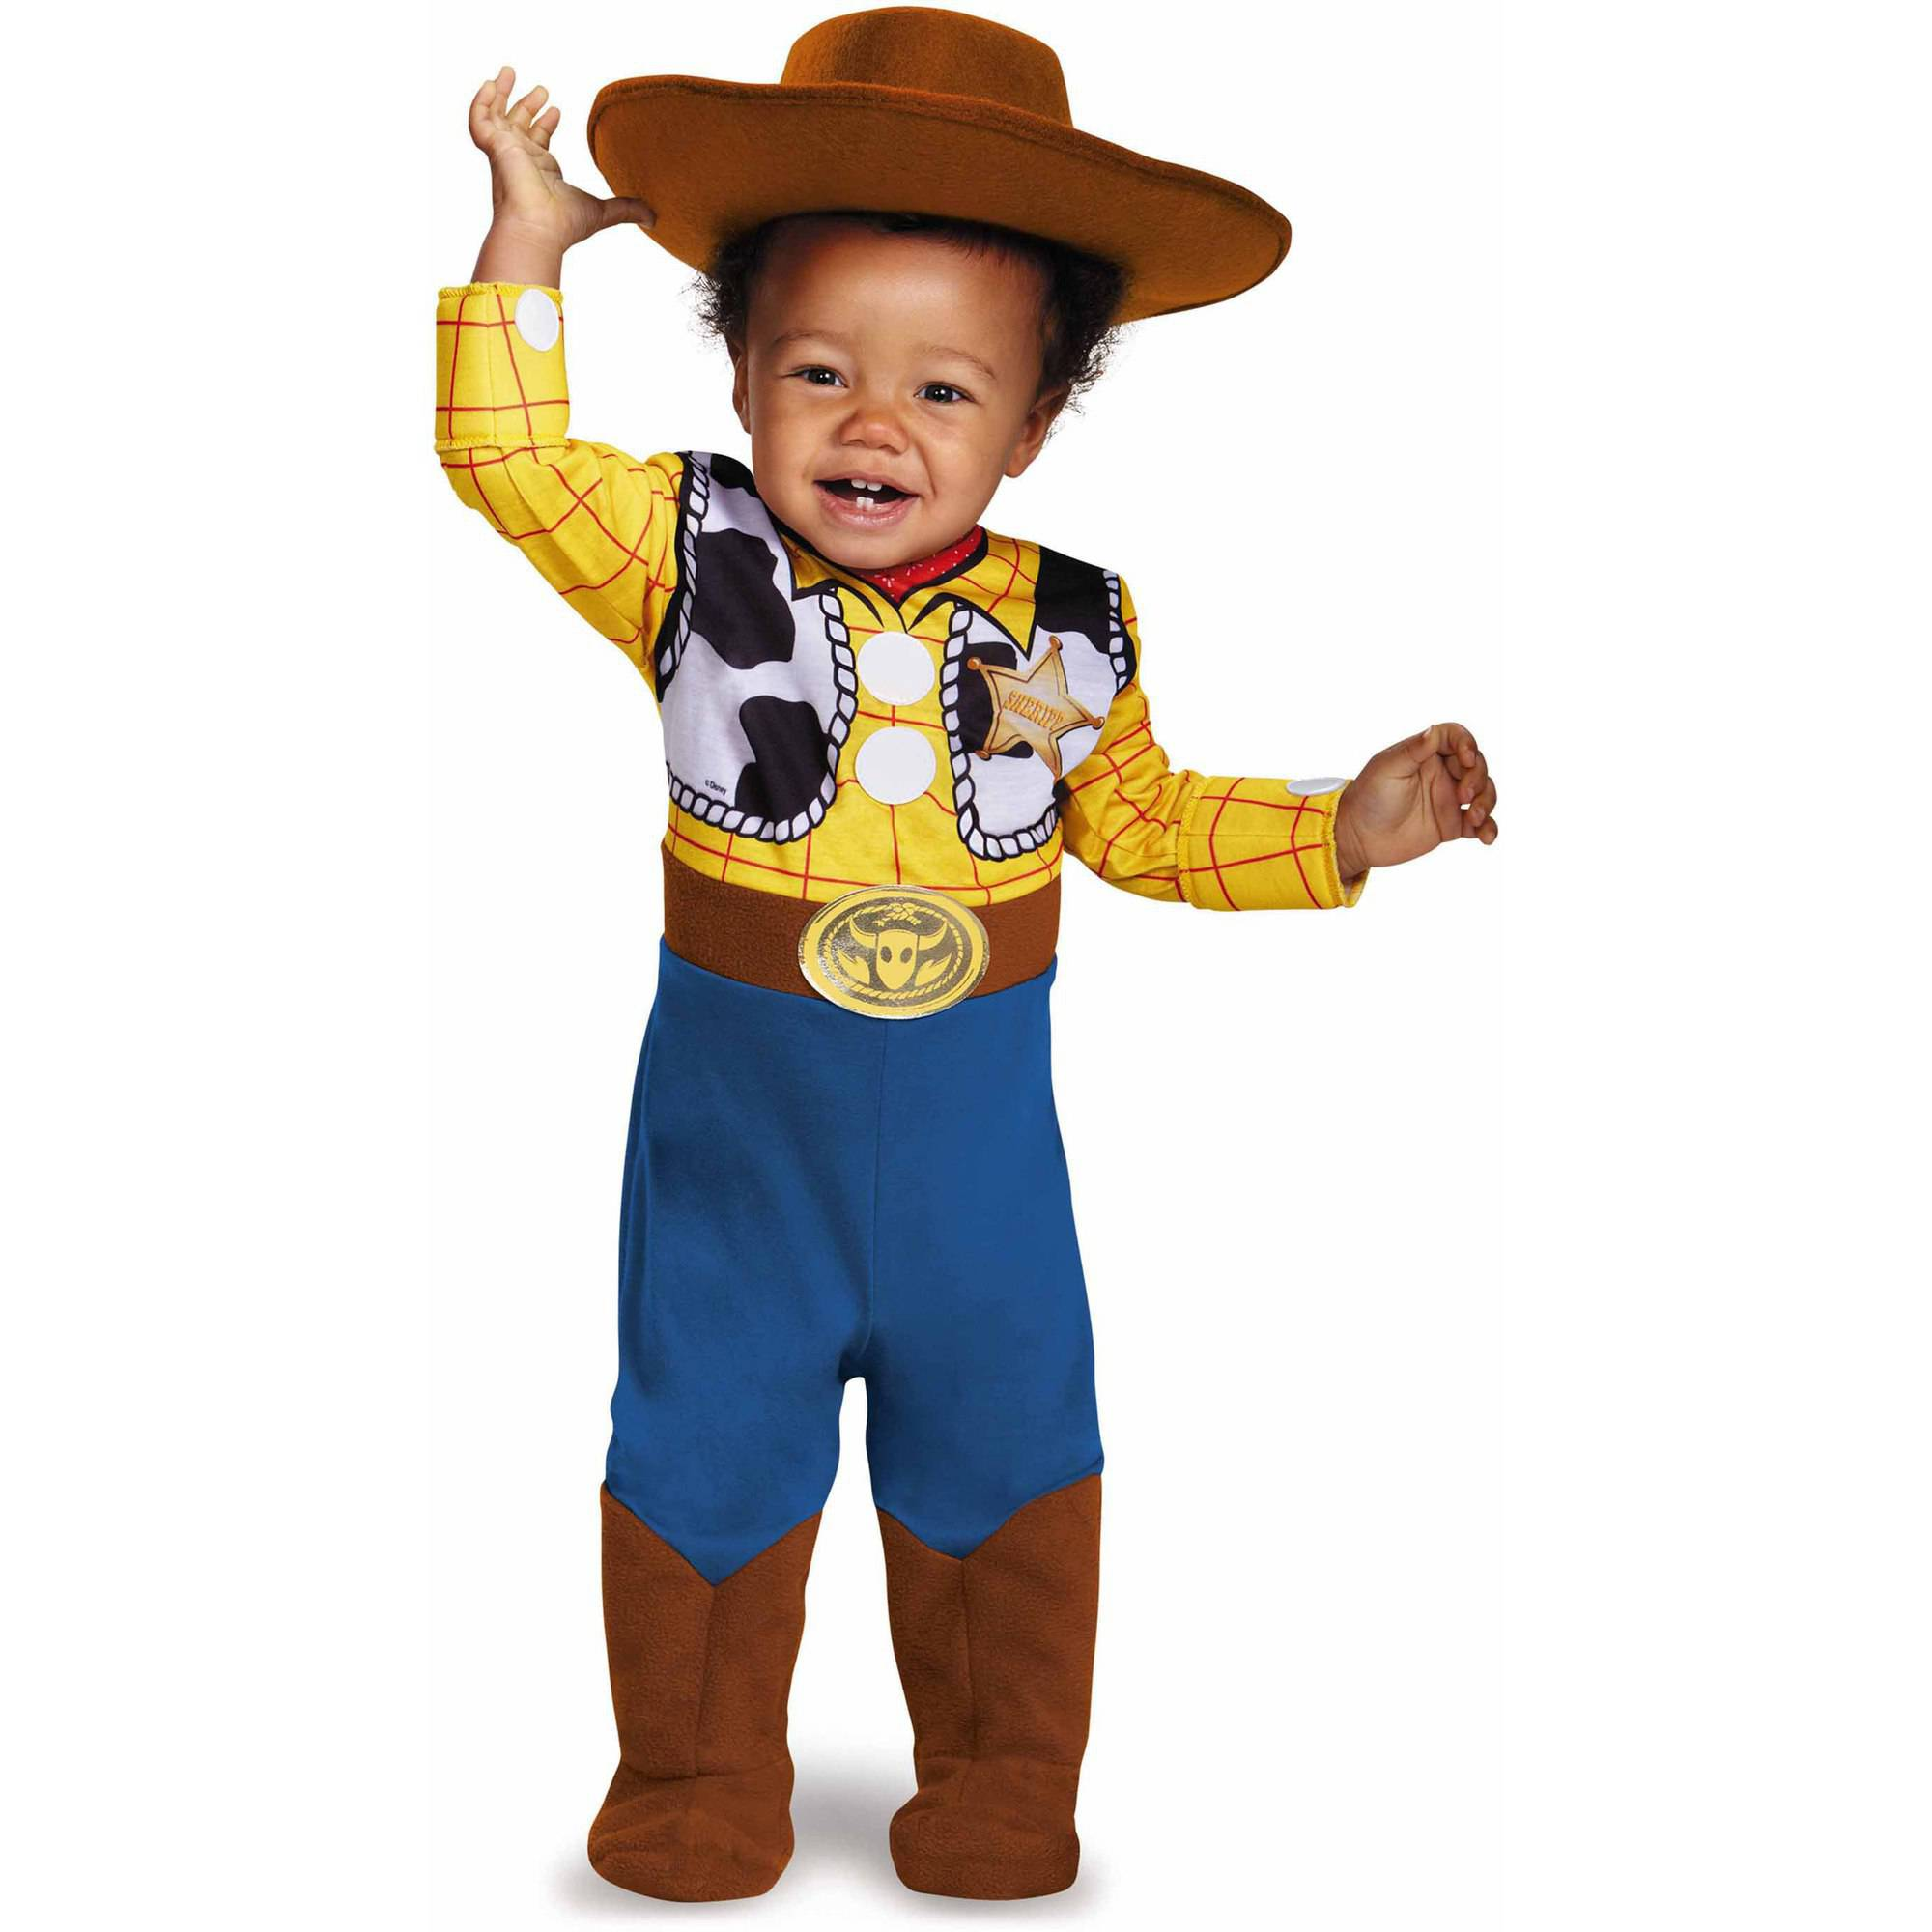 toy story infant woody deluxe costume walmartcom - Infant Football Halloween Costume